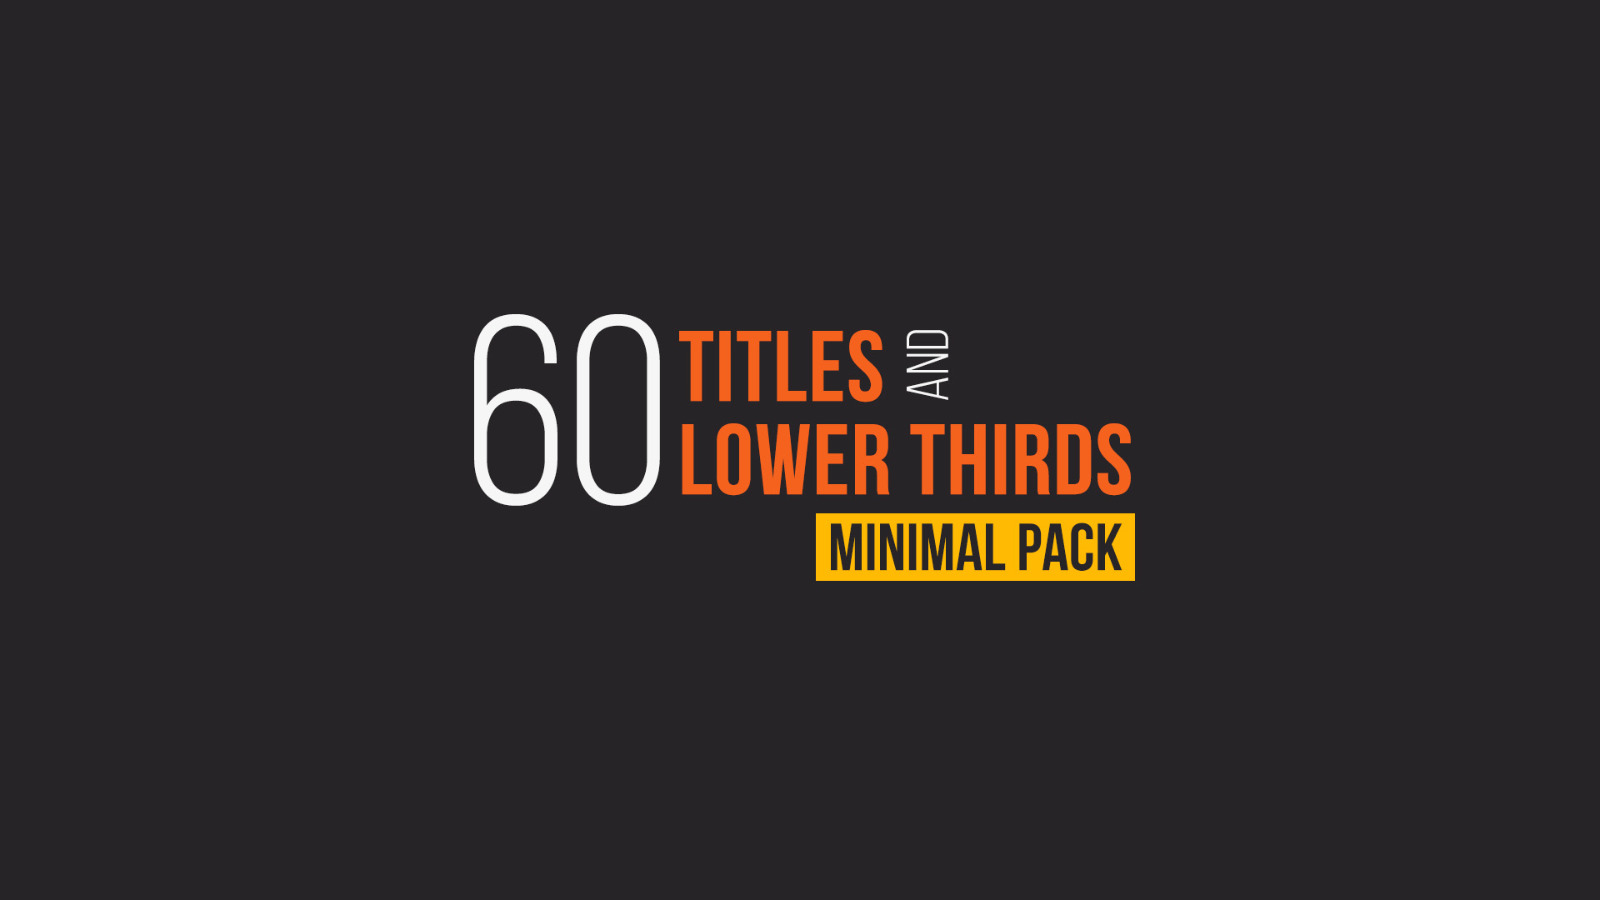 60 Titles and Lower Thirds Minimal Pack